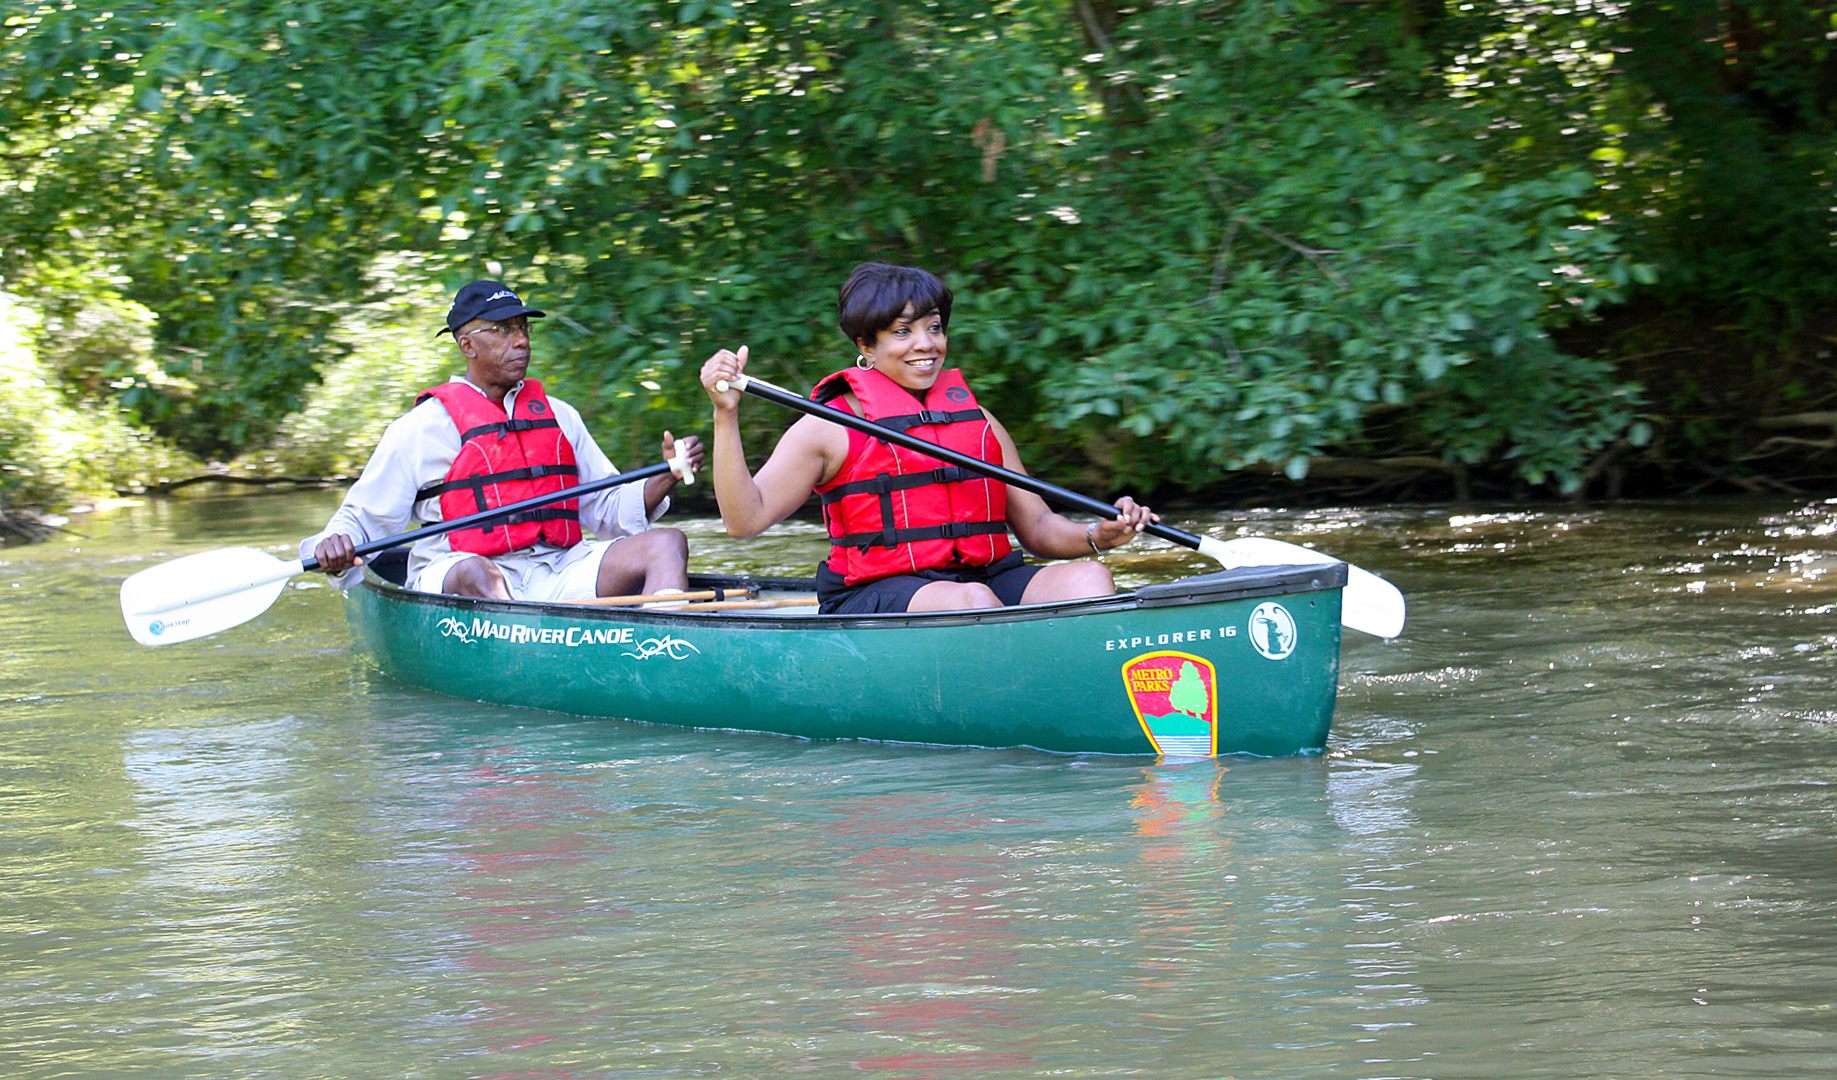 Canoeists on Big Darby Creek. Photo by Cheryl Blair.